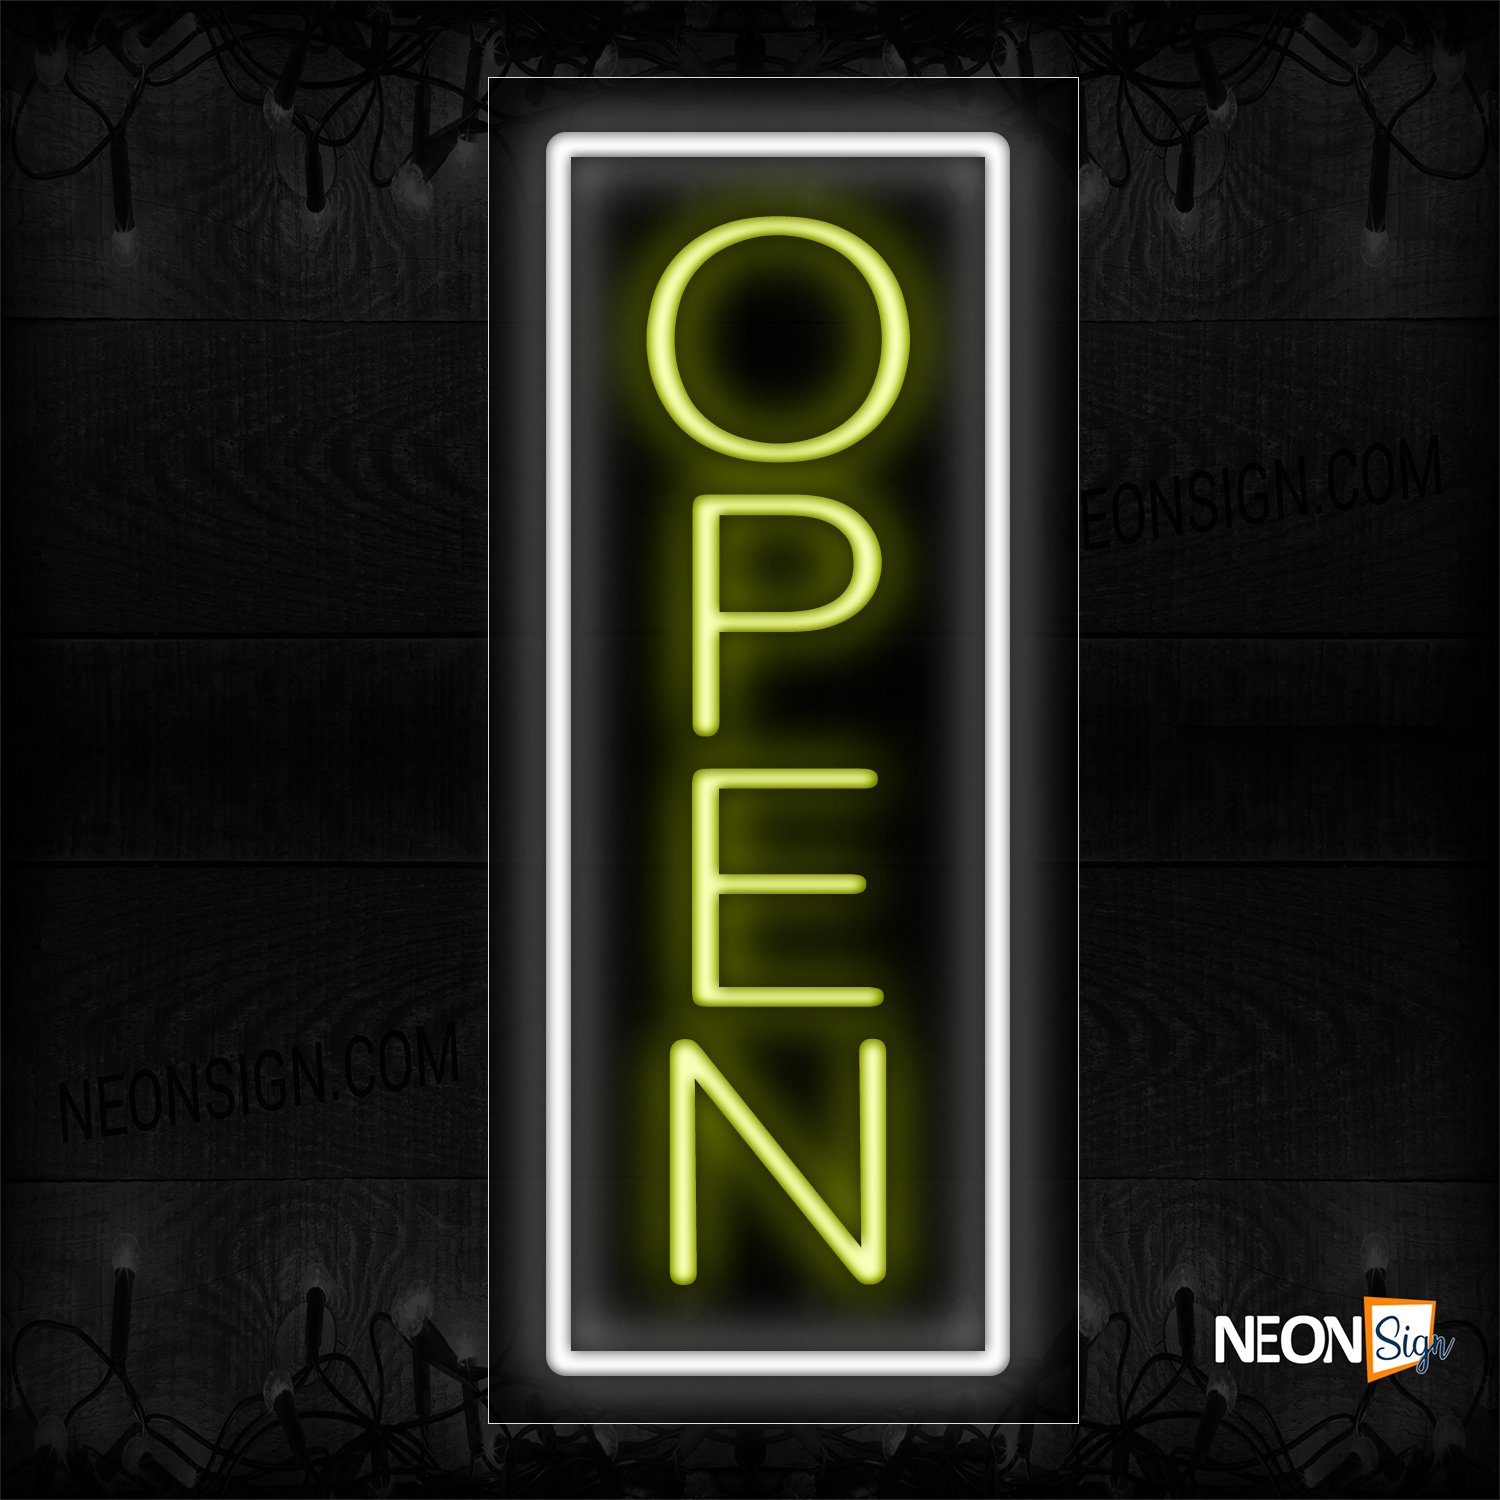 Image of Vertical Open With White Border Neon Sign